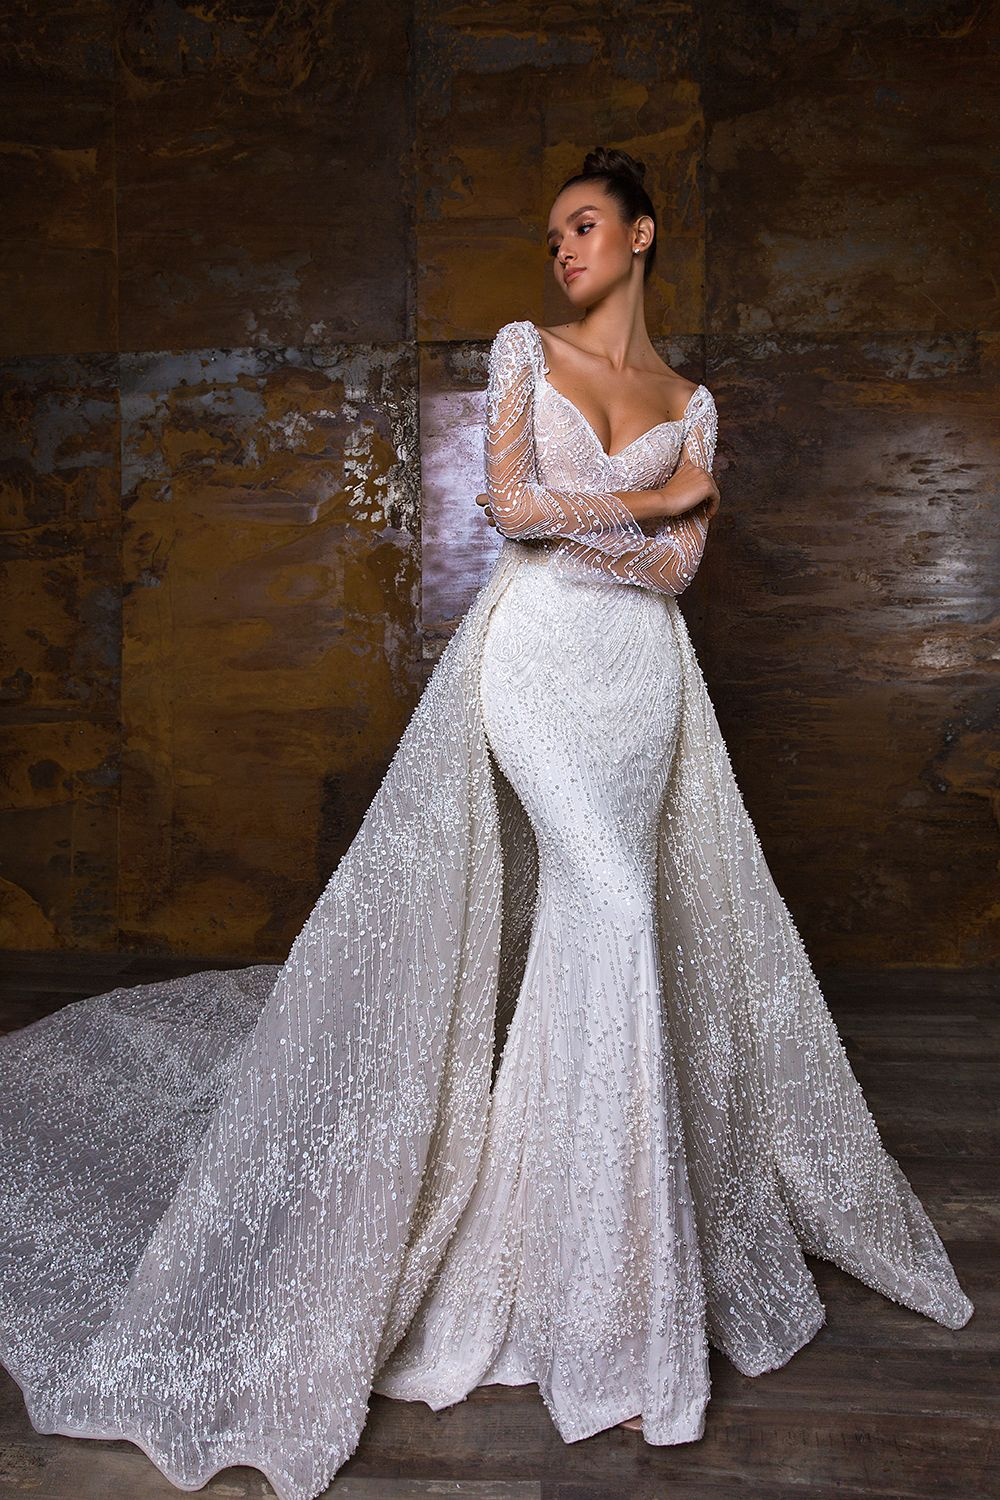 dd80f5e89f23 Crystal Design: PENELOPE dress. A sophisticated long sleeve column dress  with removable overskirt.